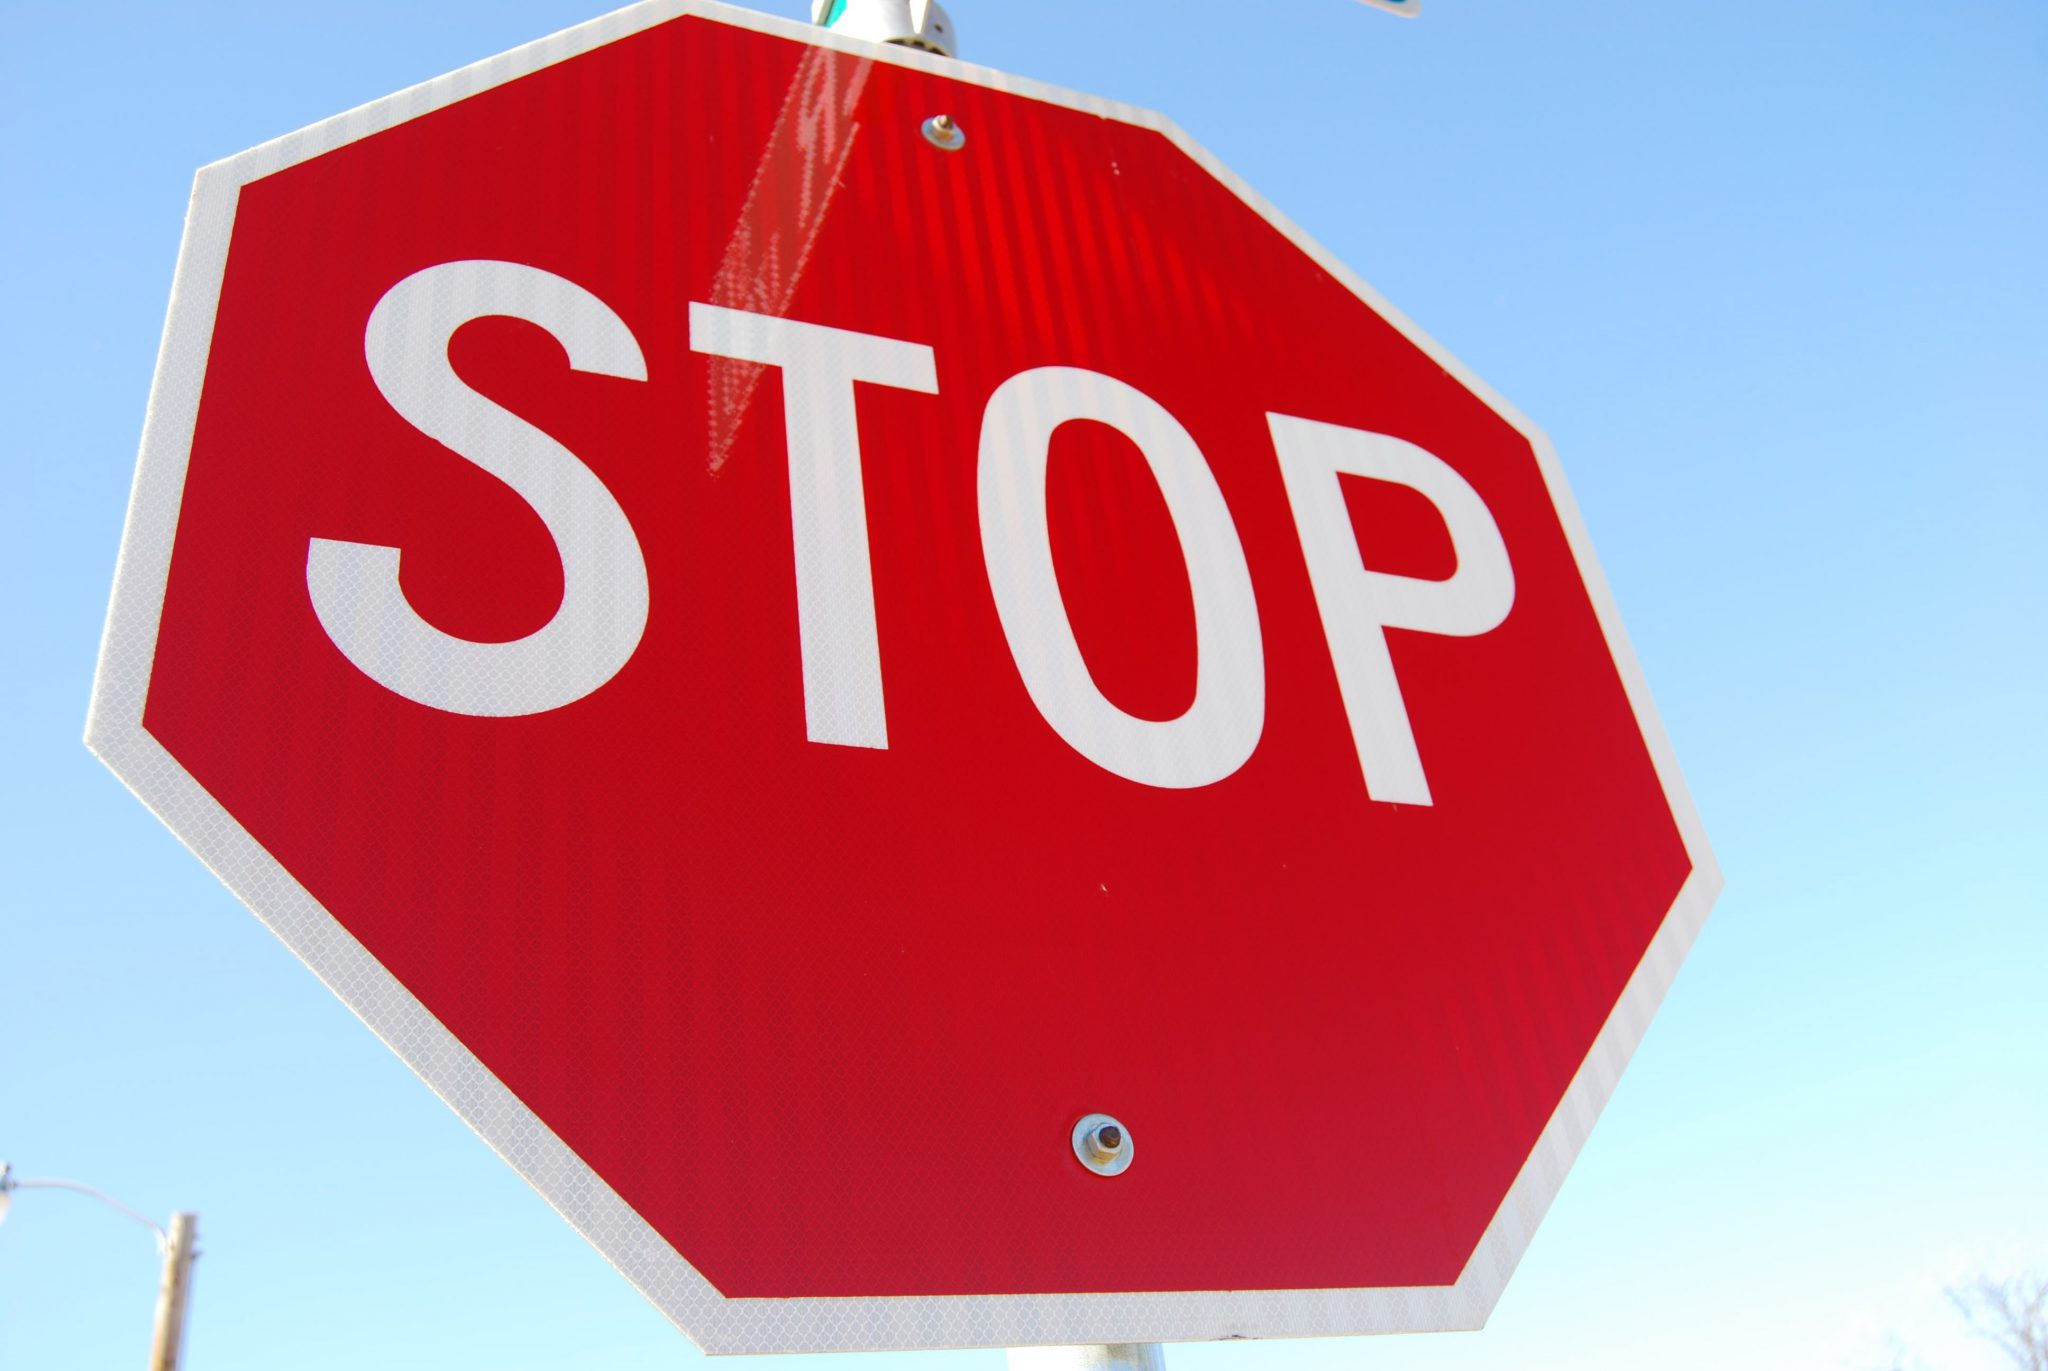 stop-sign-319045